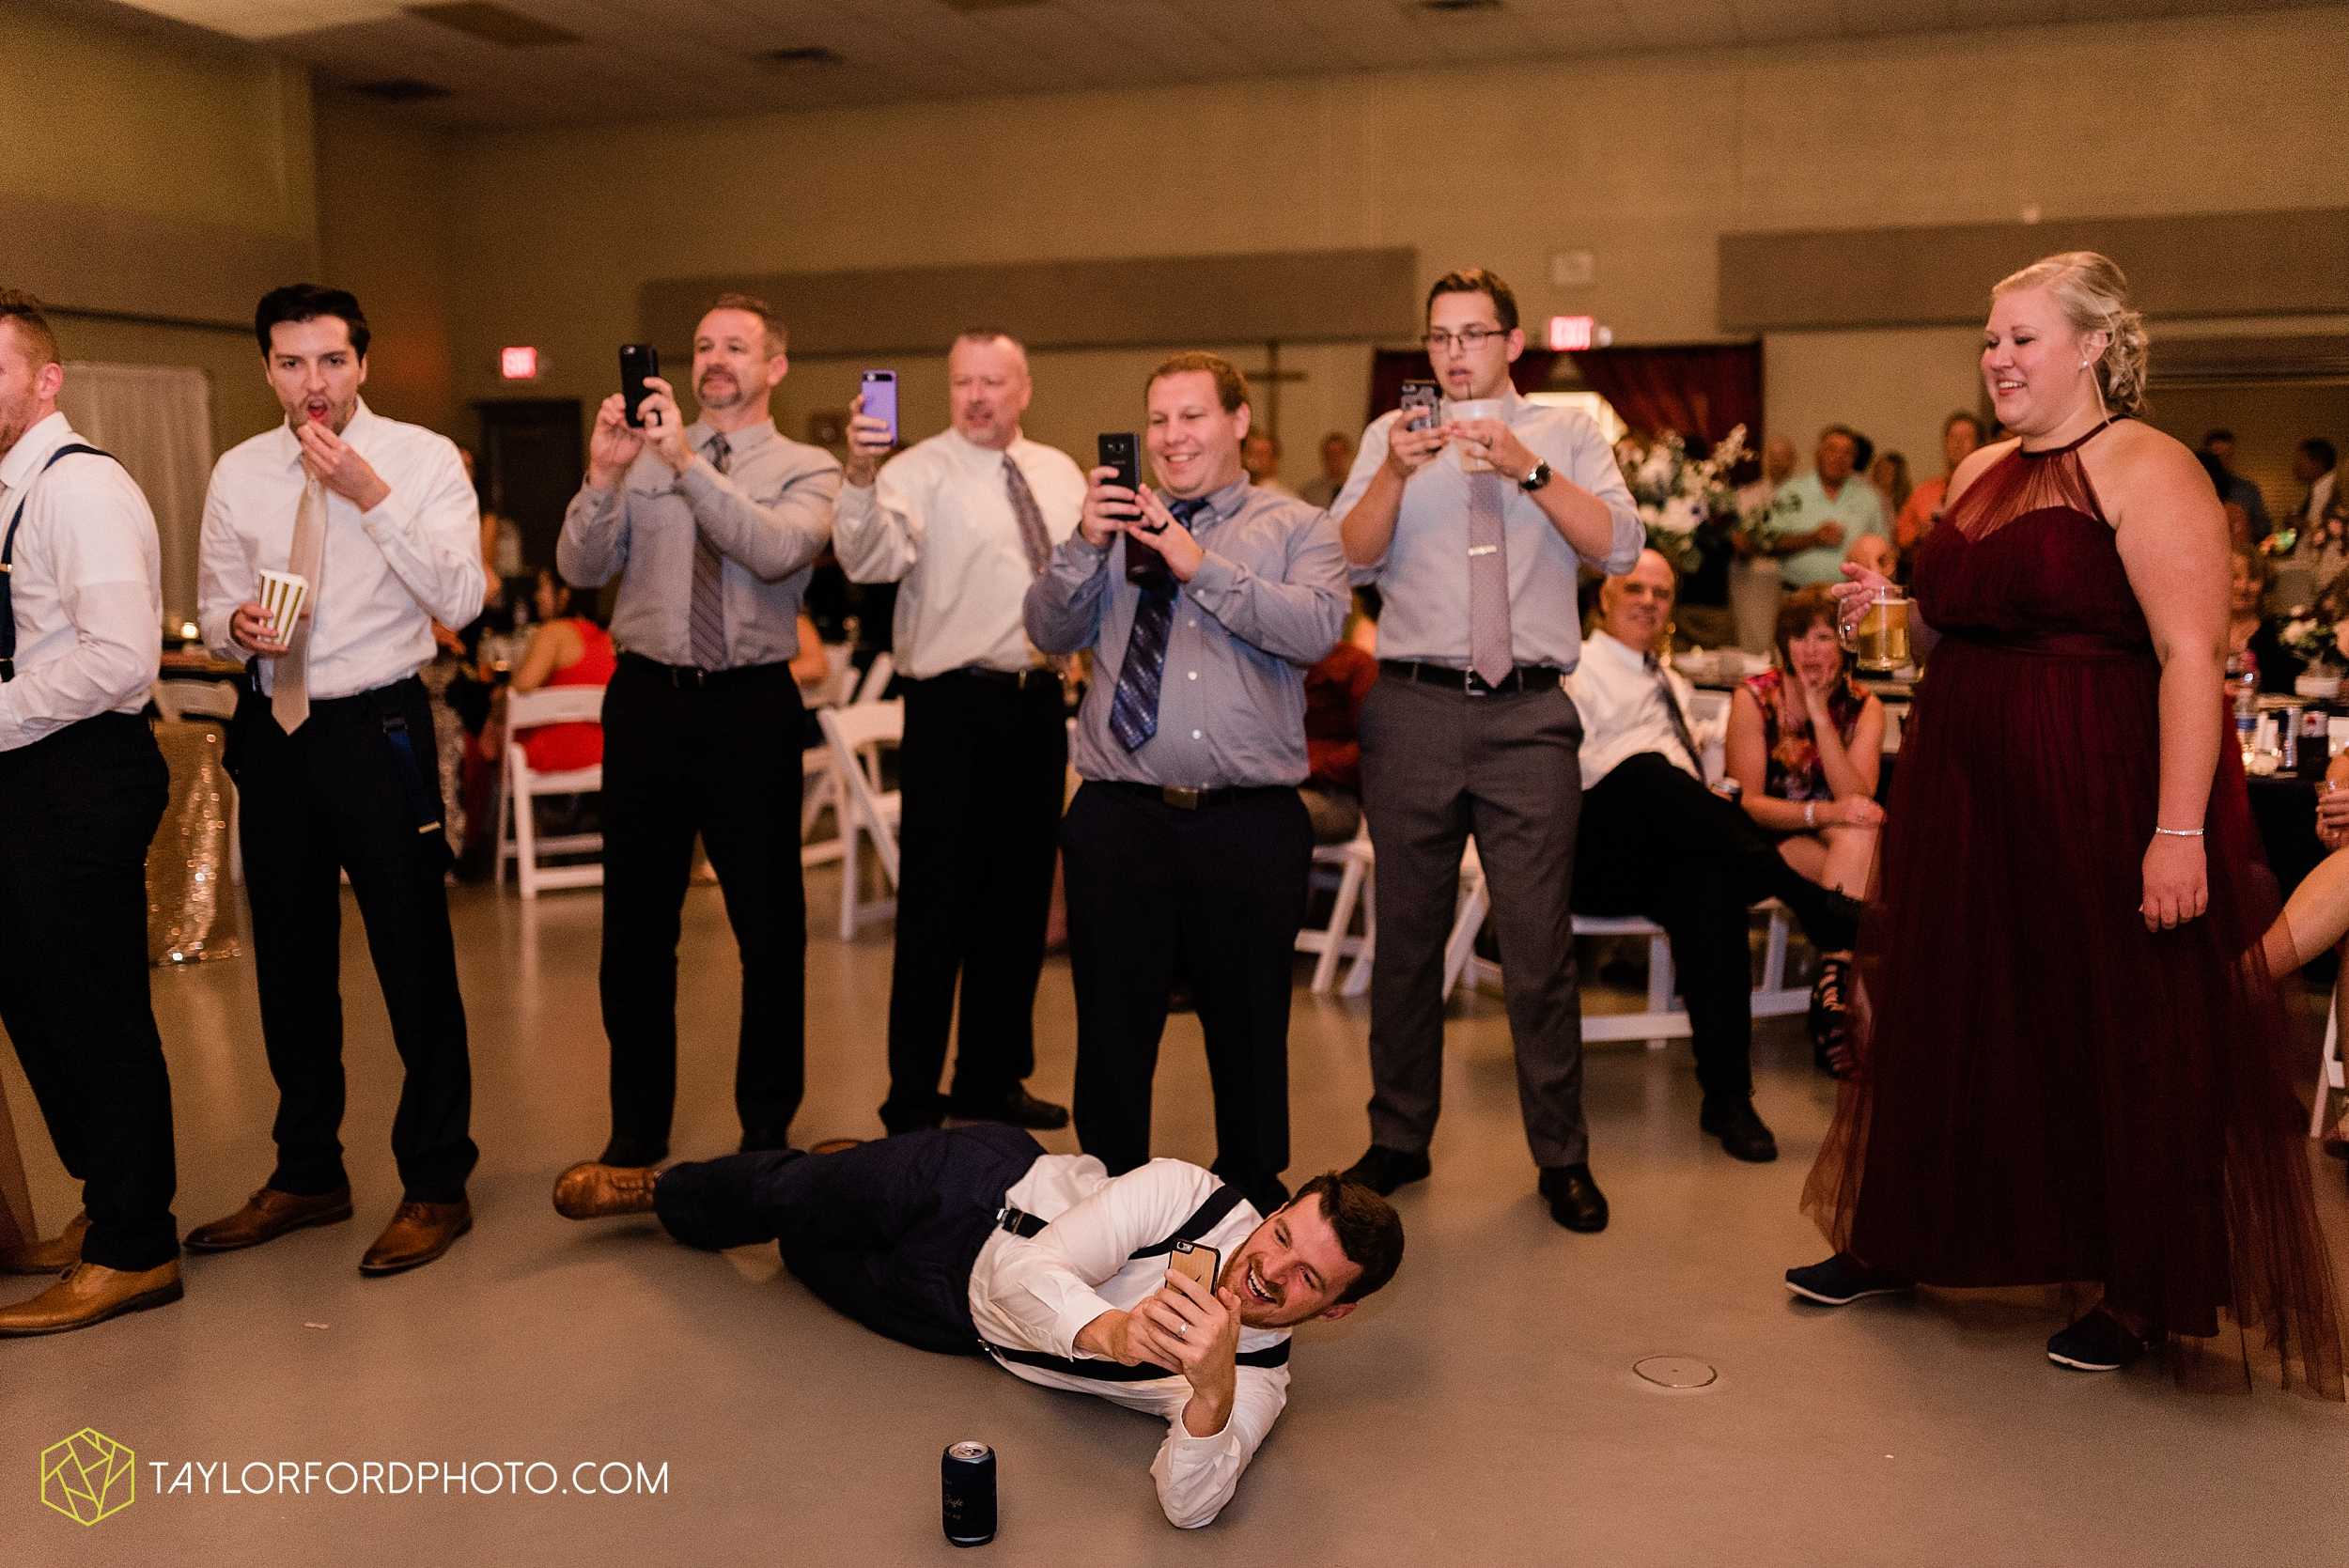 gayle-rayman-mike-steele-ottoville-ohio-wedding-immaculate-conception-parish-center-wedding-sycamore-lake-winery-wannamachers-photographer-taylor-ford-photography_0453.jpg